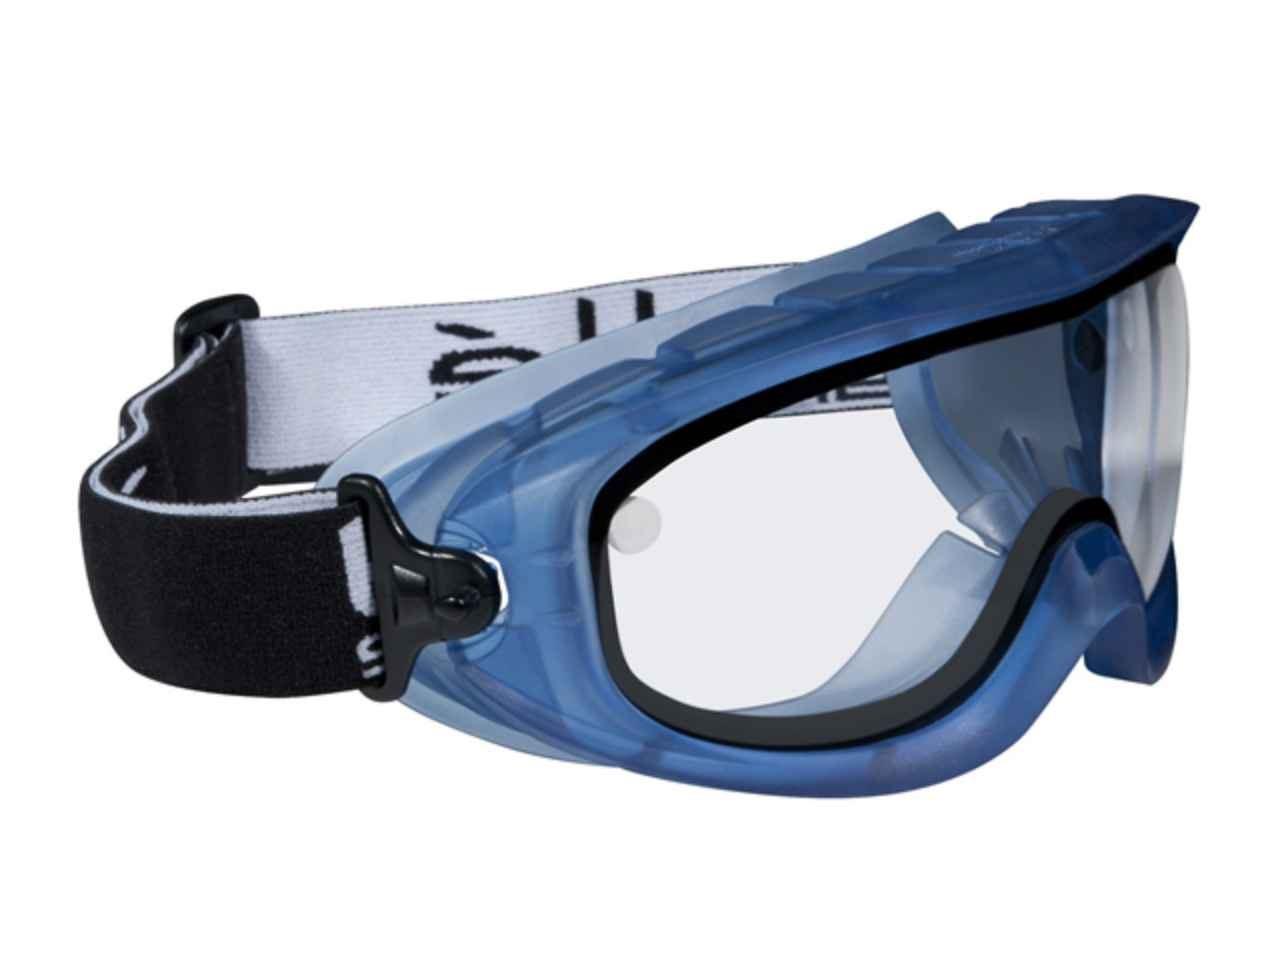 2613b385eefbbc Bolle ATOEPSI Atom Safety Goggles Clear - Sealed